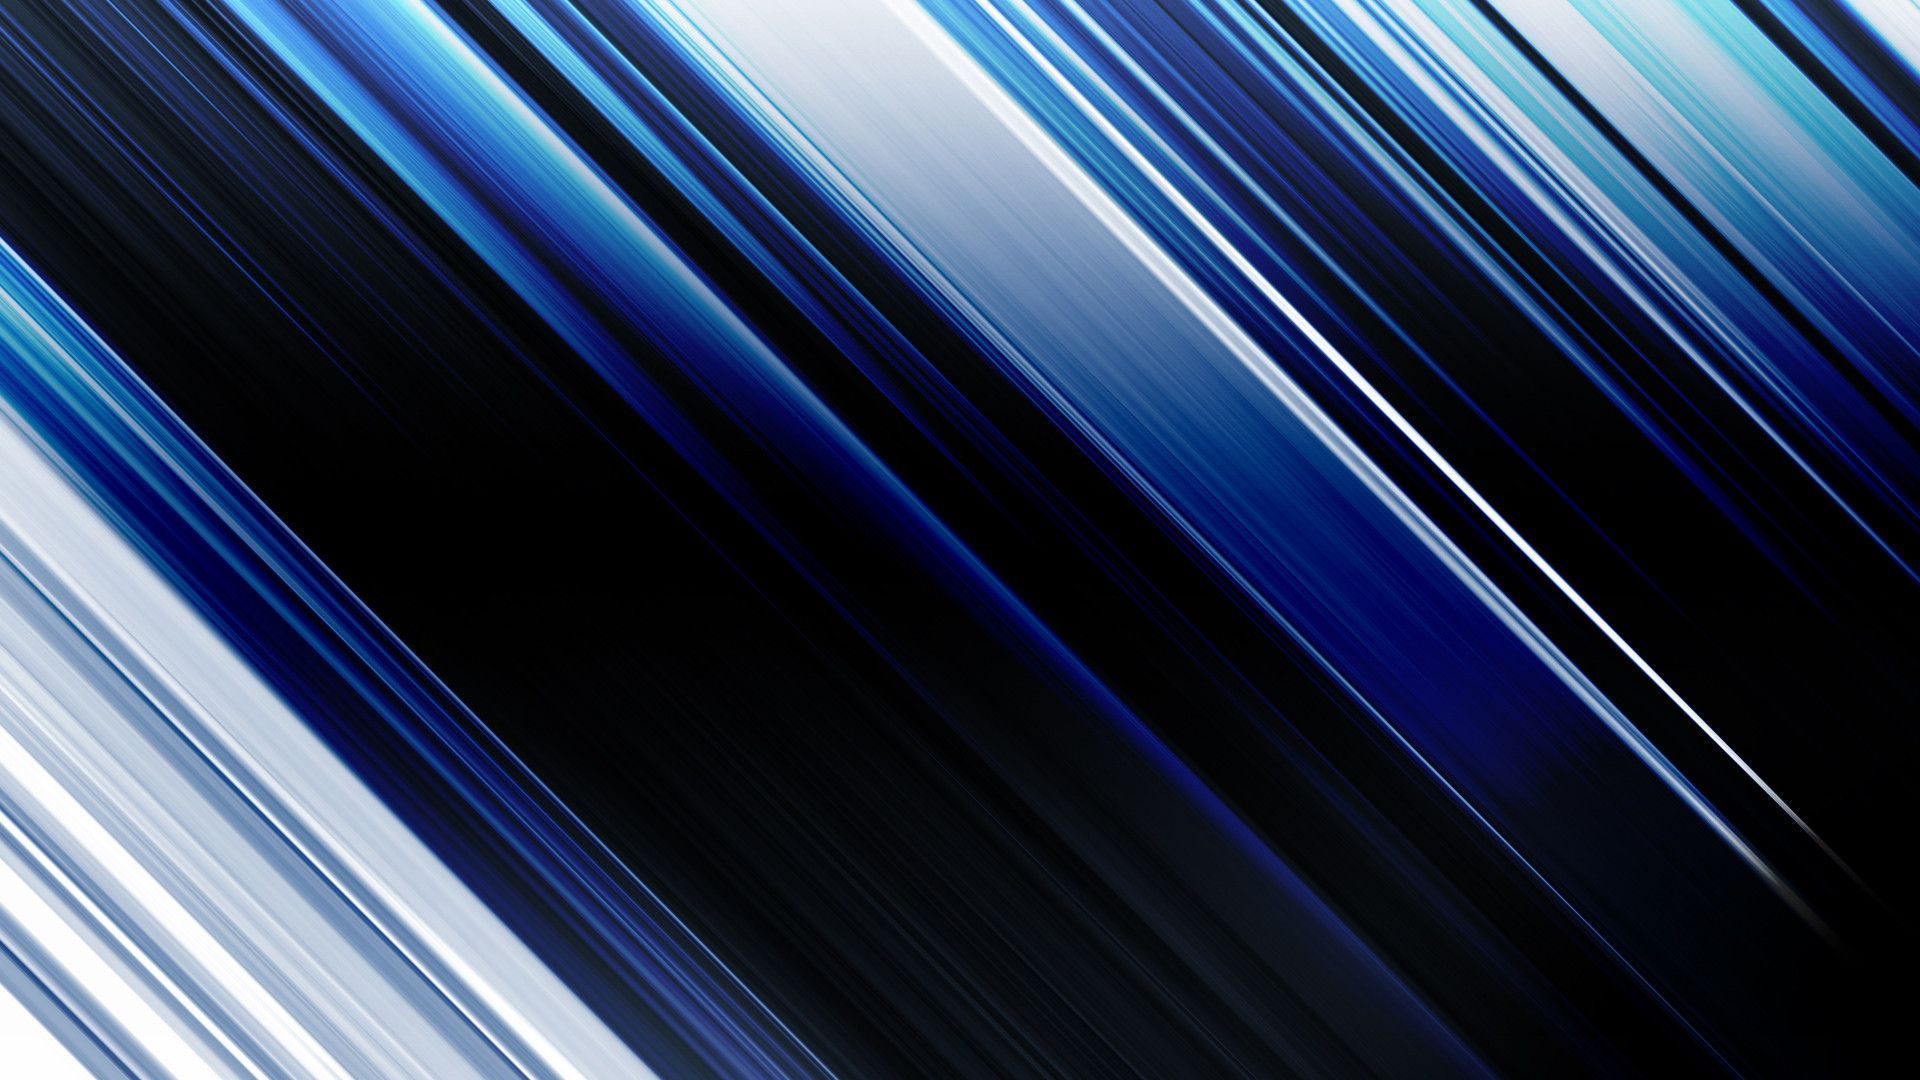 Blue And Black Wallpaper 25